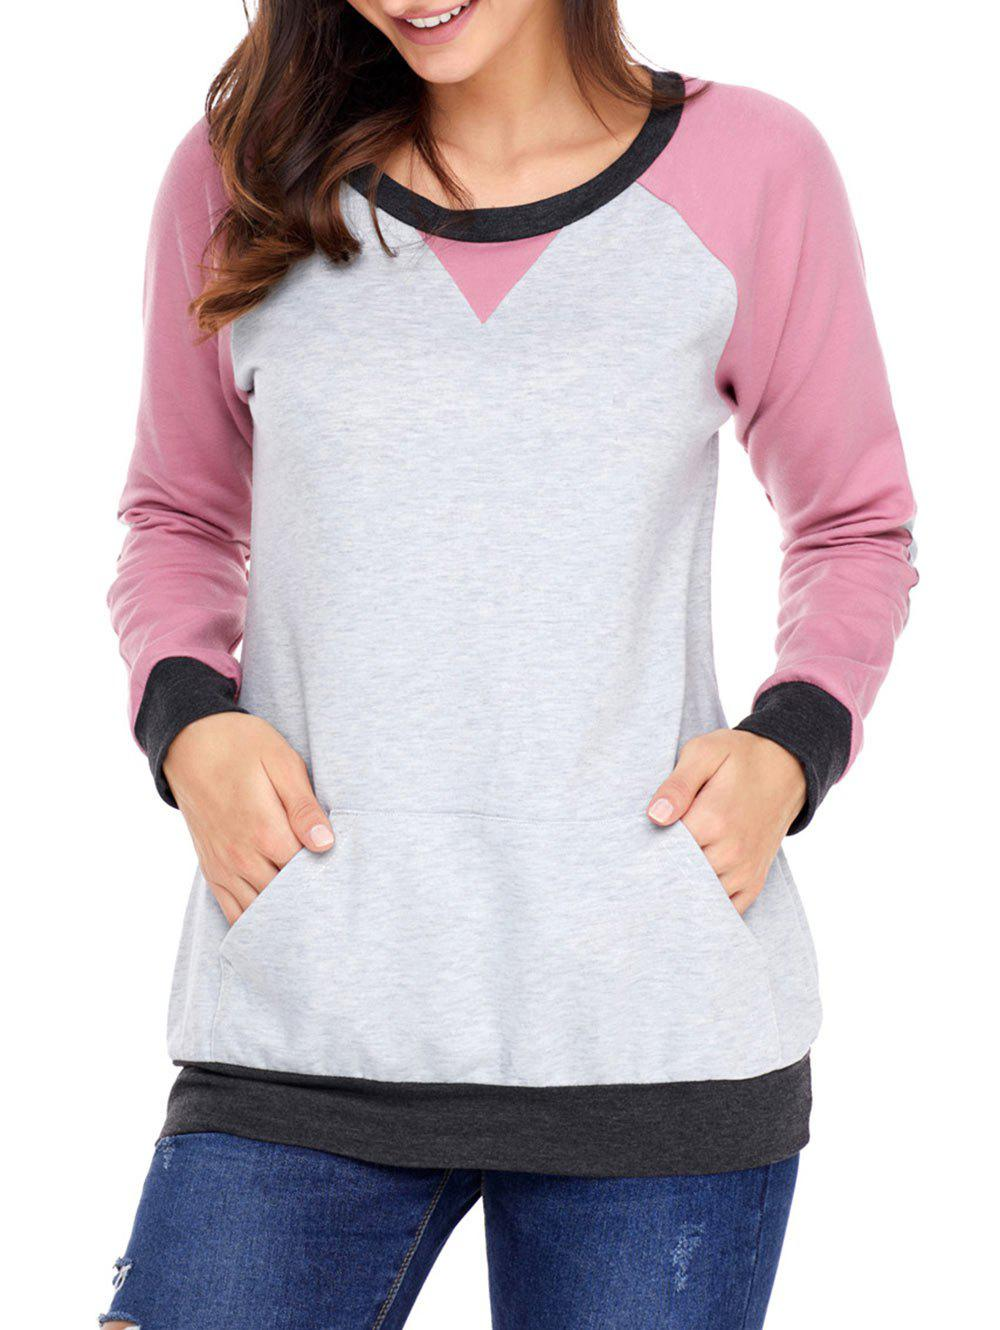 Kangaroo Pocket Color Block Elbow Patch Sweatshirt - PINK XL